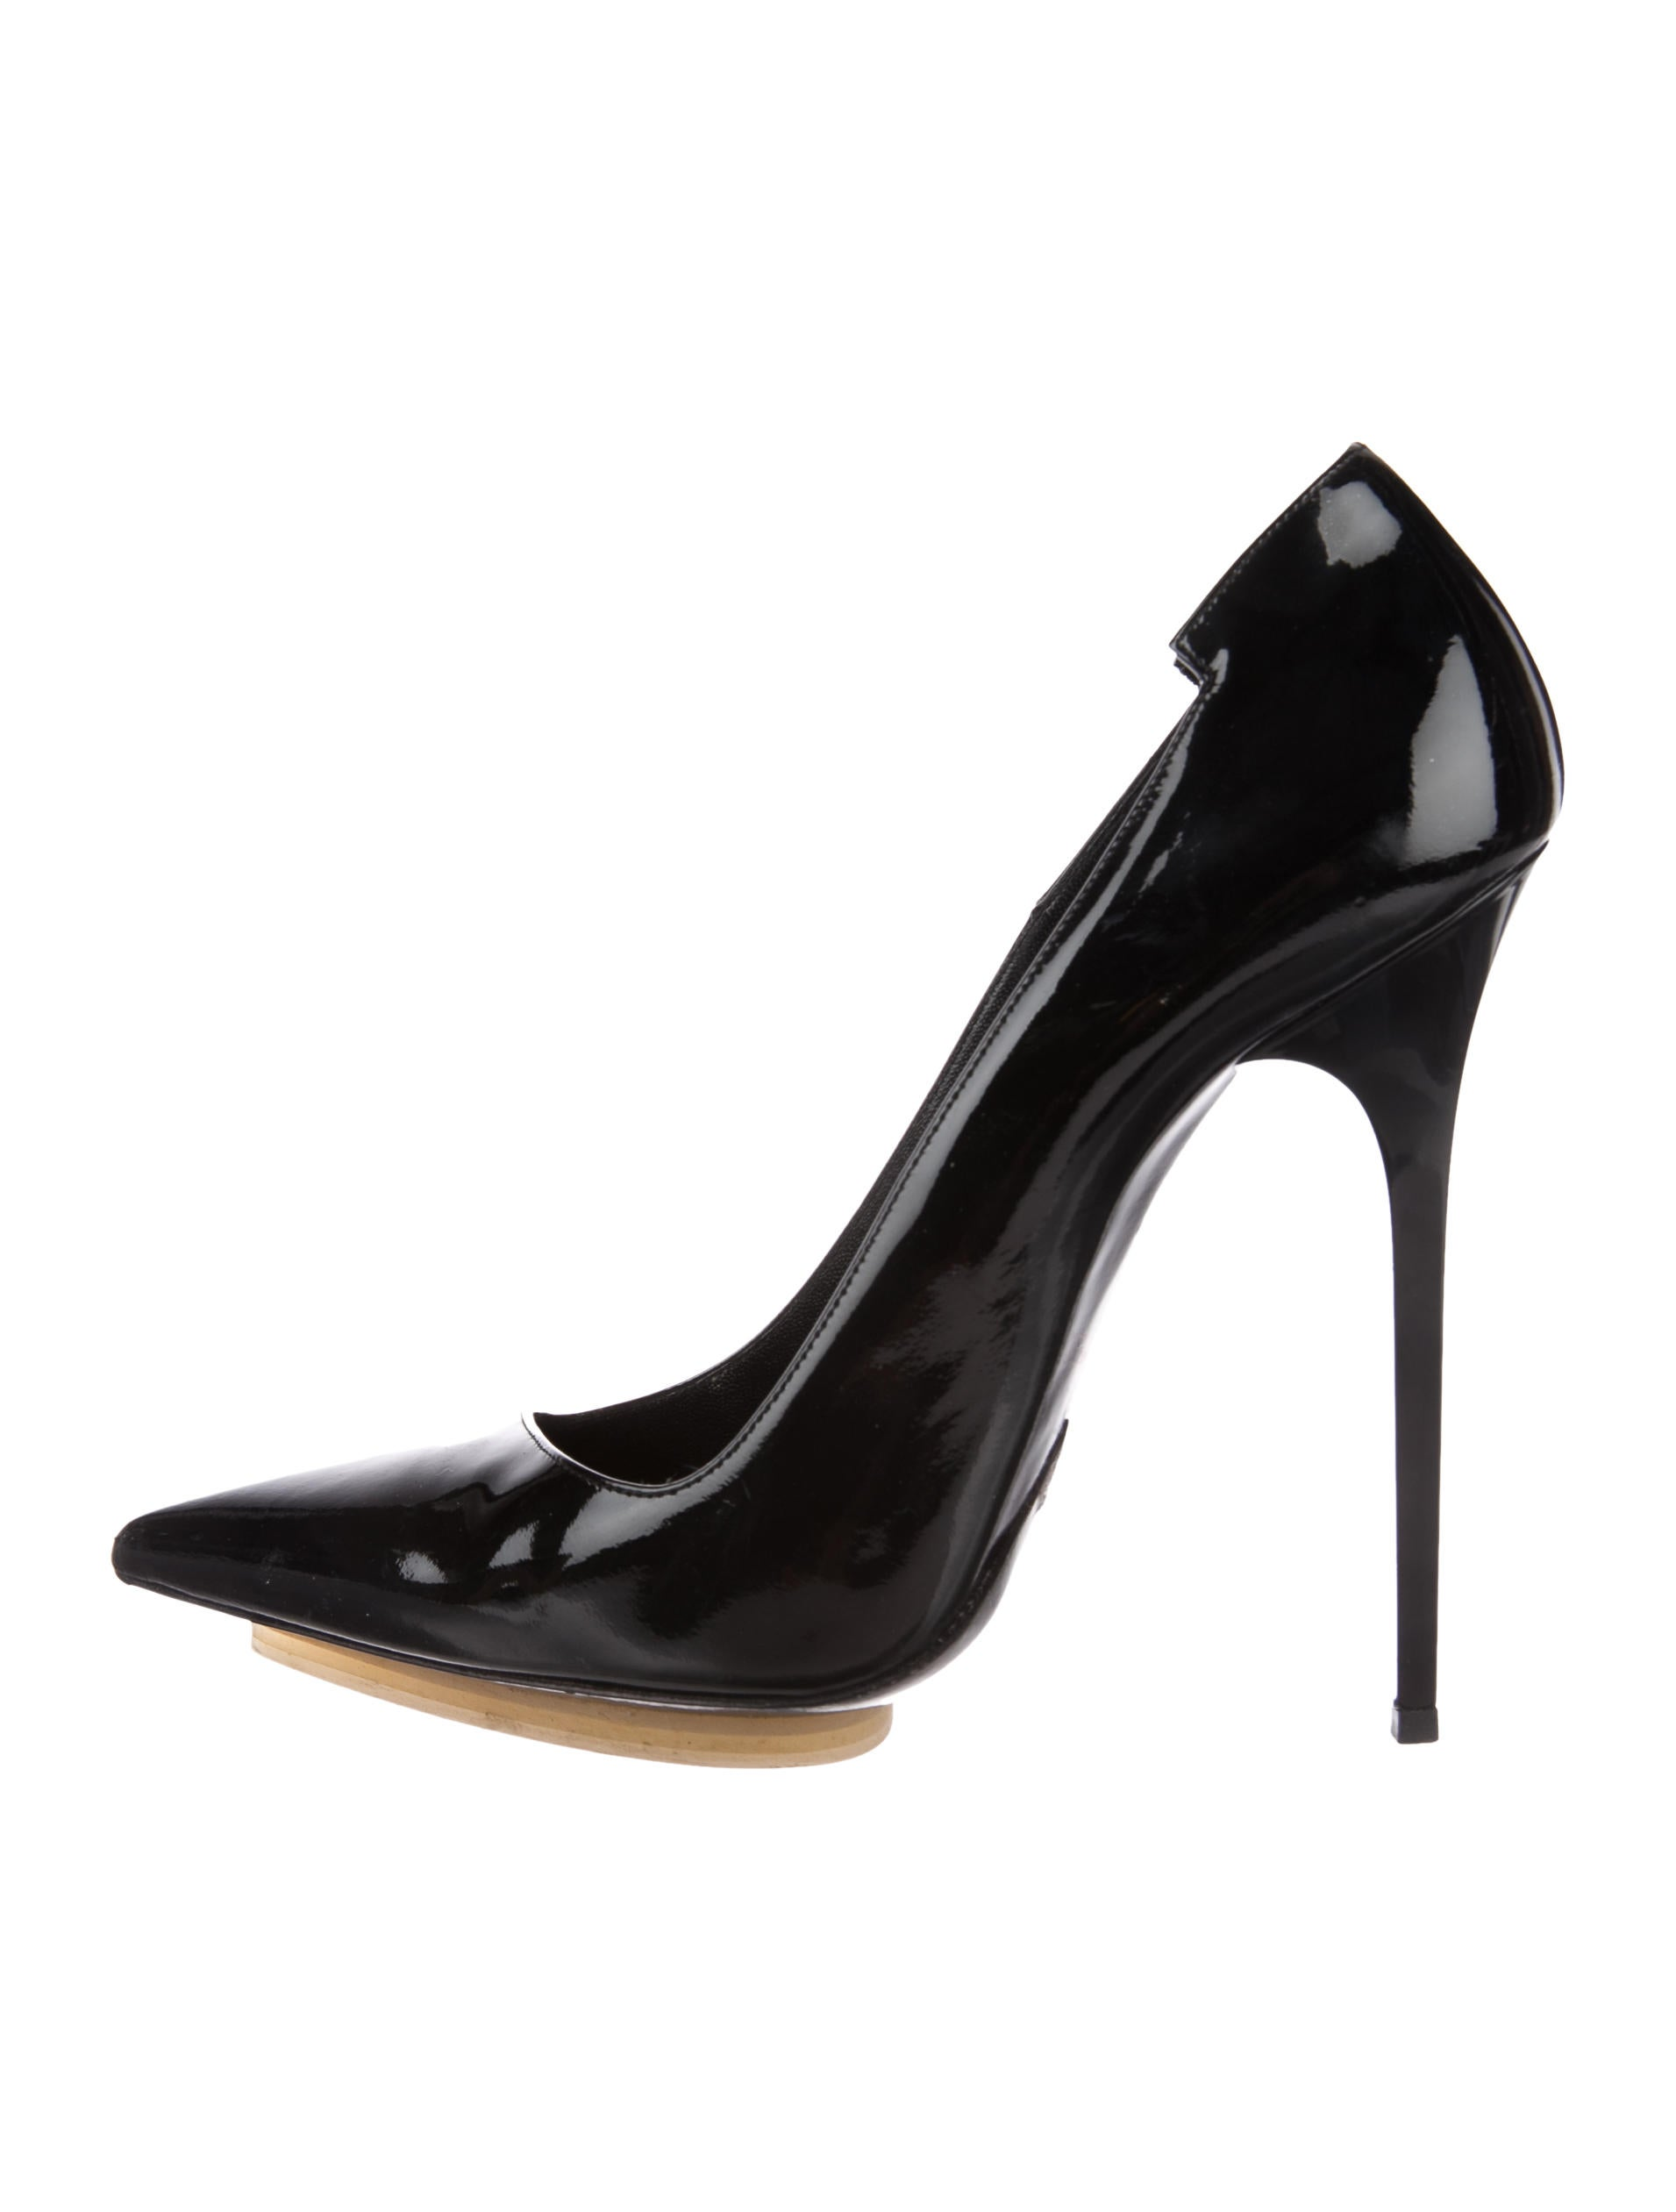 official discount top quality Balenciaga Patent Leather Pointed-Toe Pumps clearance 100% original rJJ4OHlk